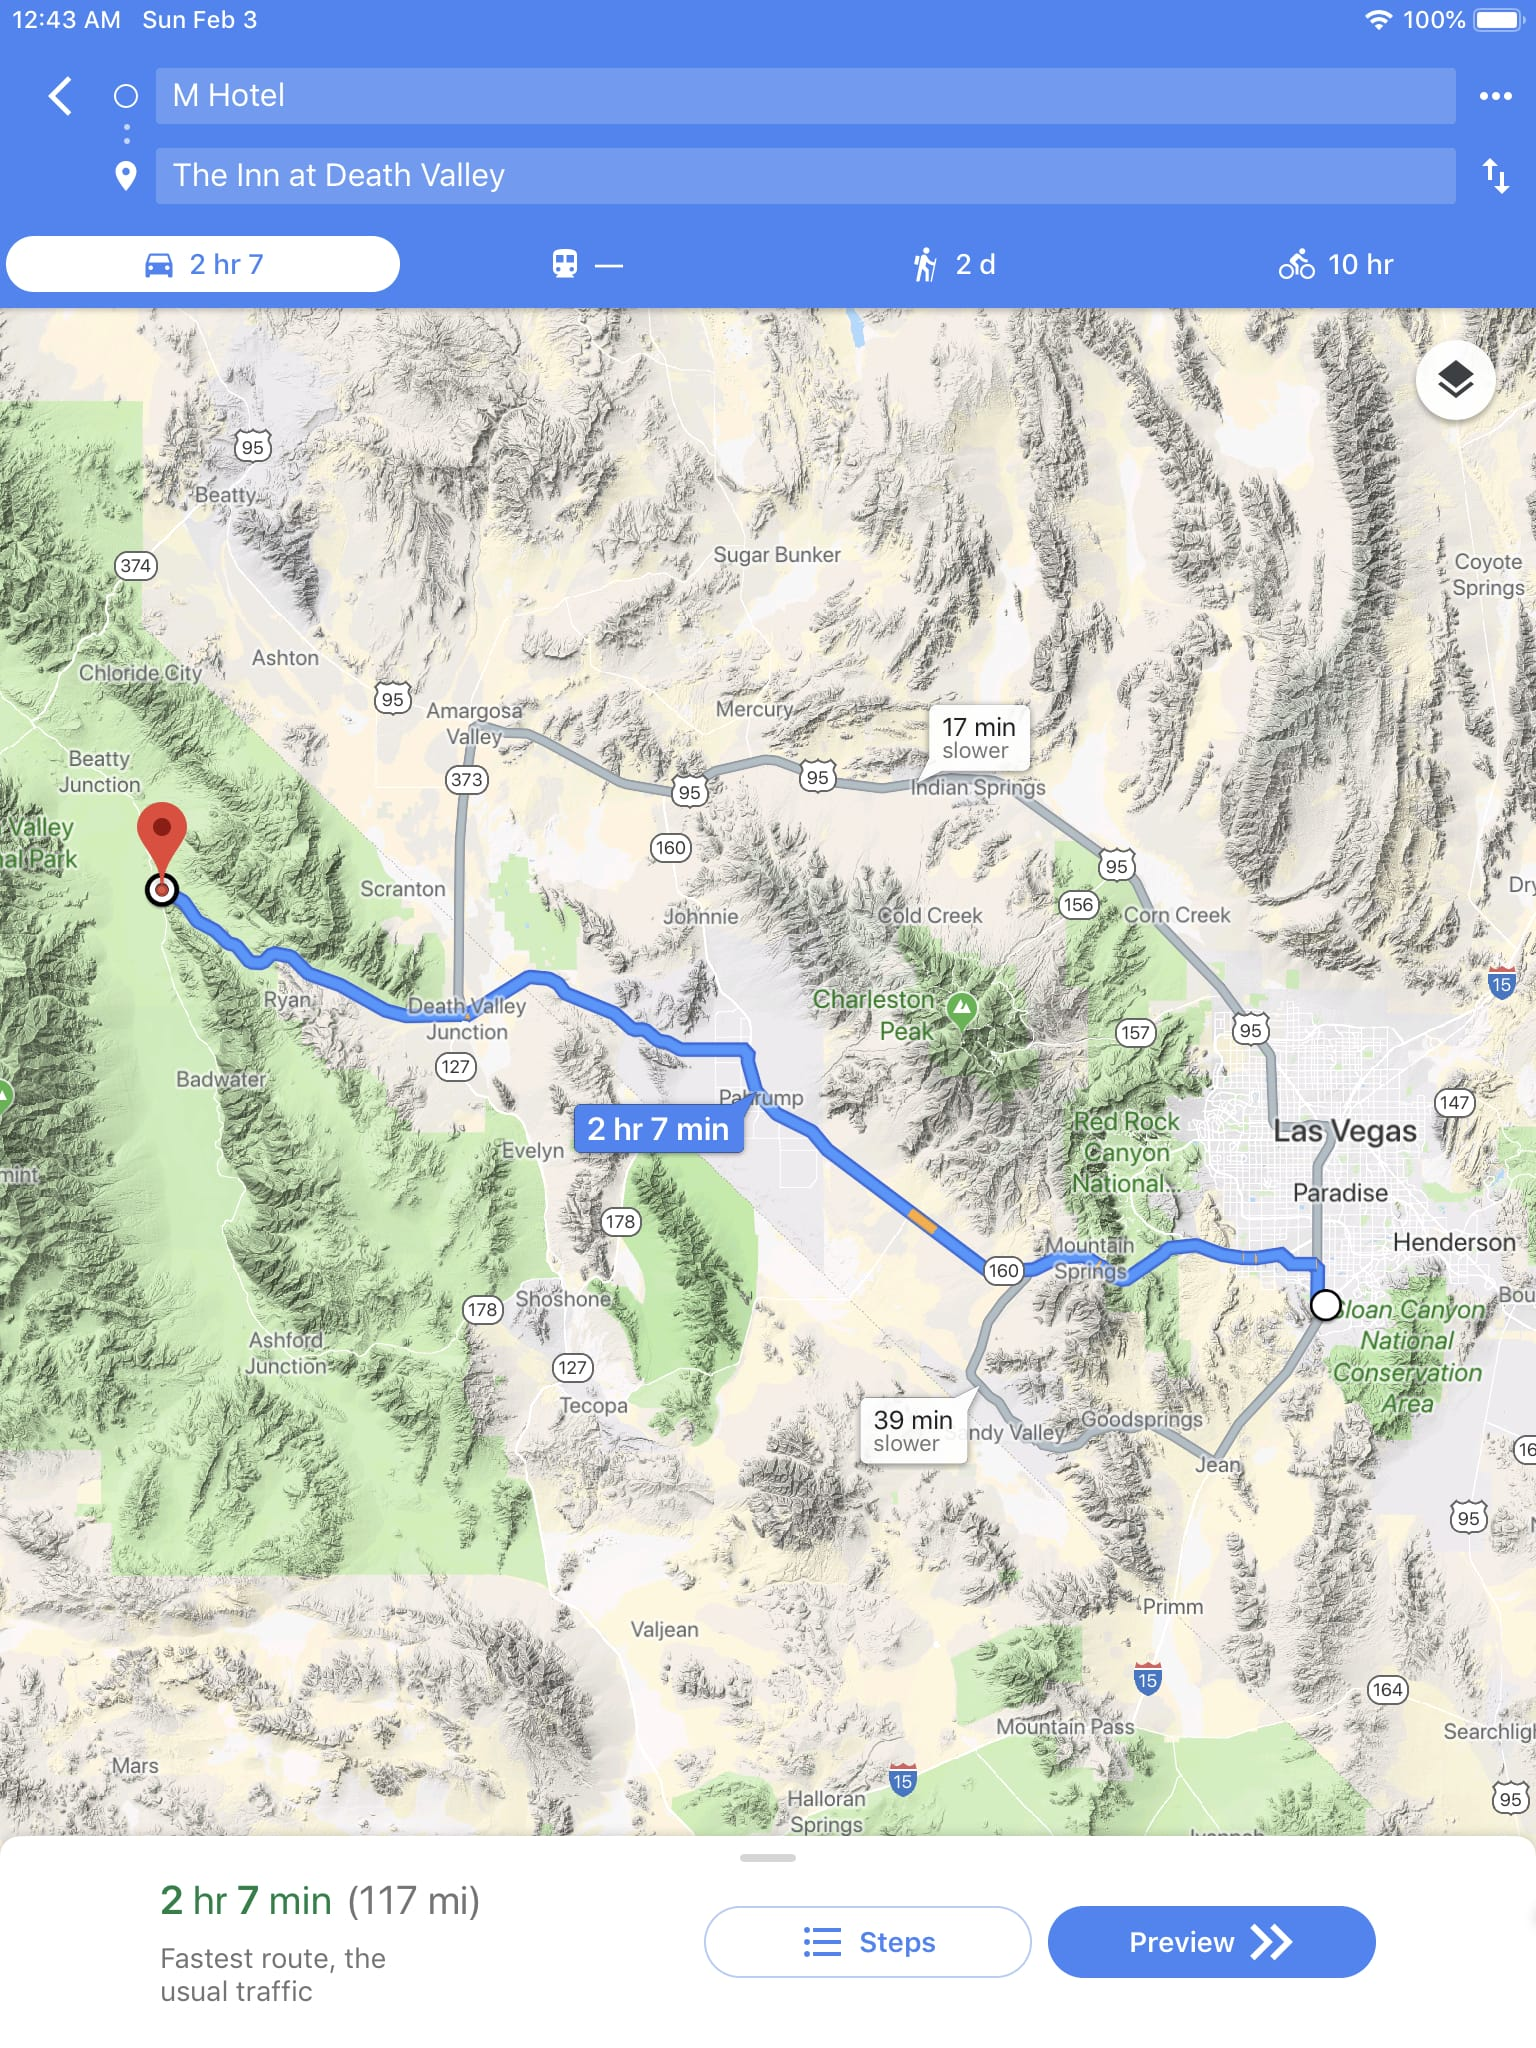 Route wmap from M Hotel Las Vegas to The Inn at Death Valley